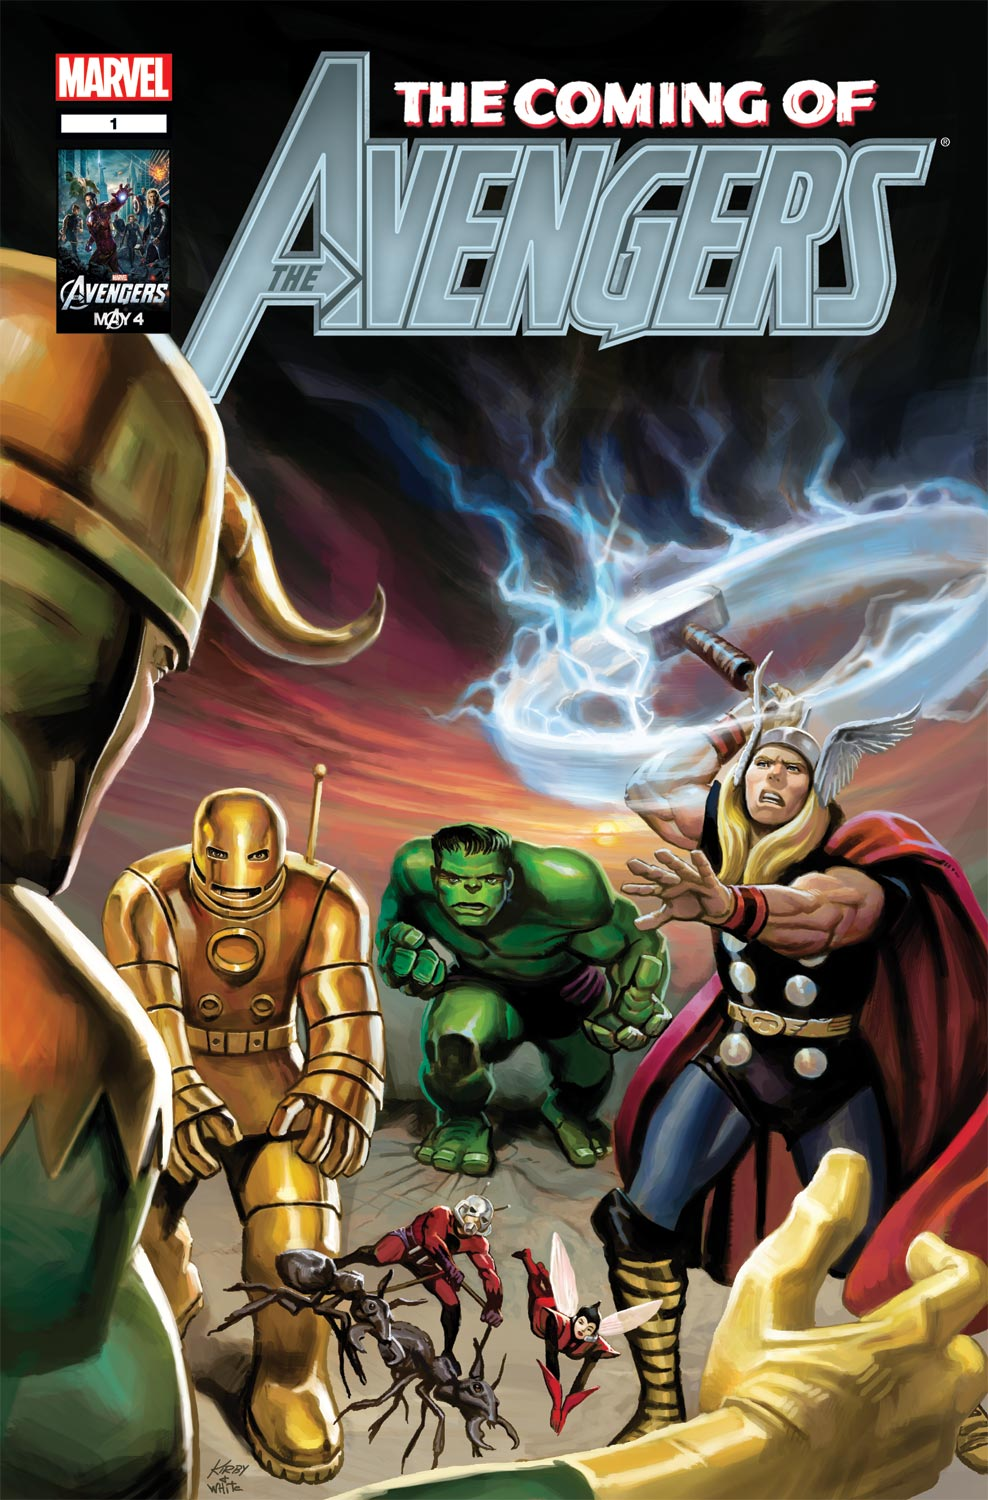 Avengers: The Coming of the Avengers! (2011) #1